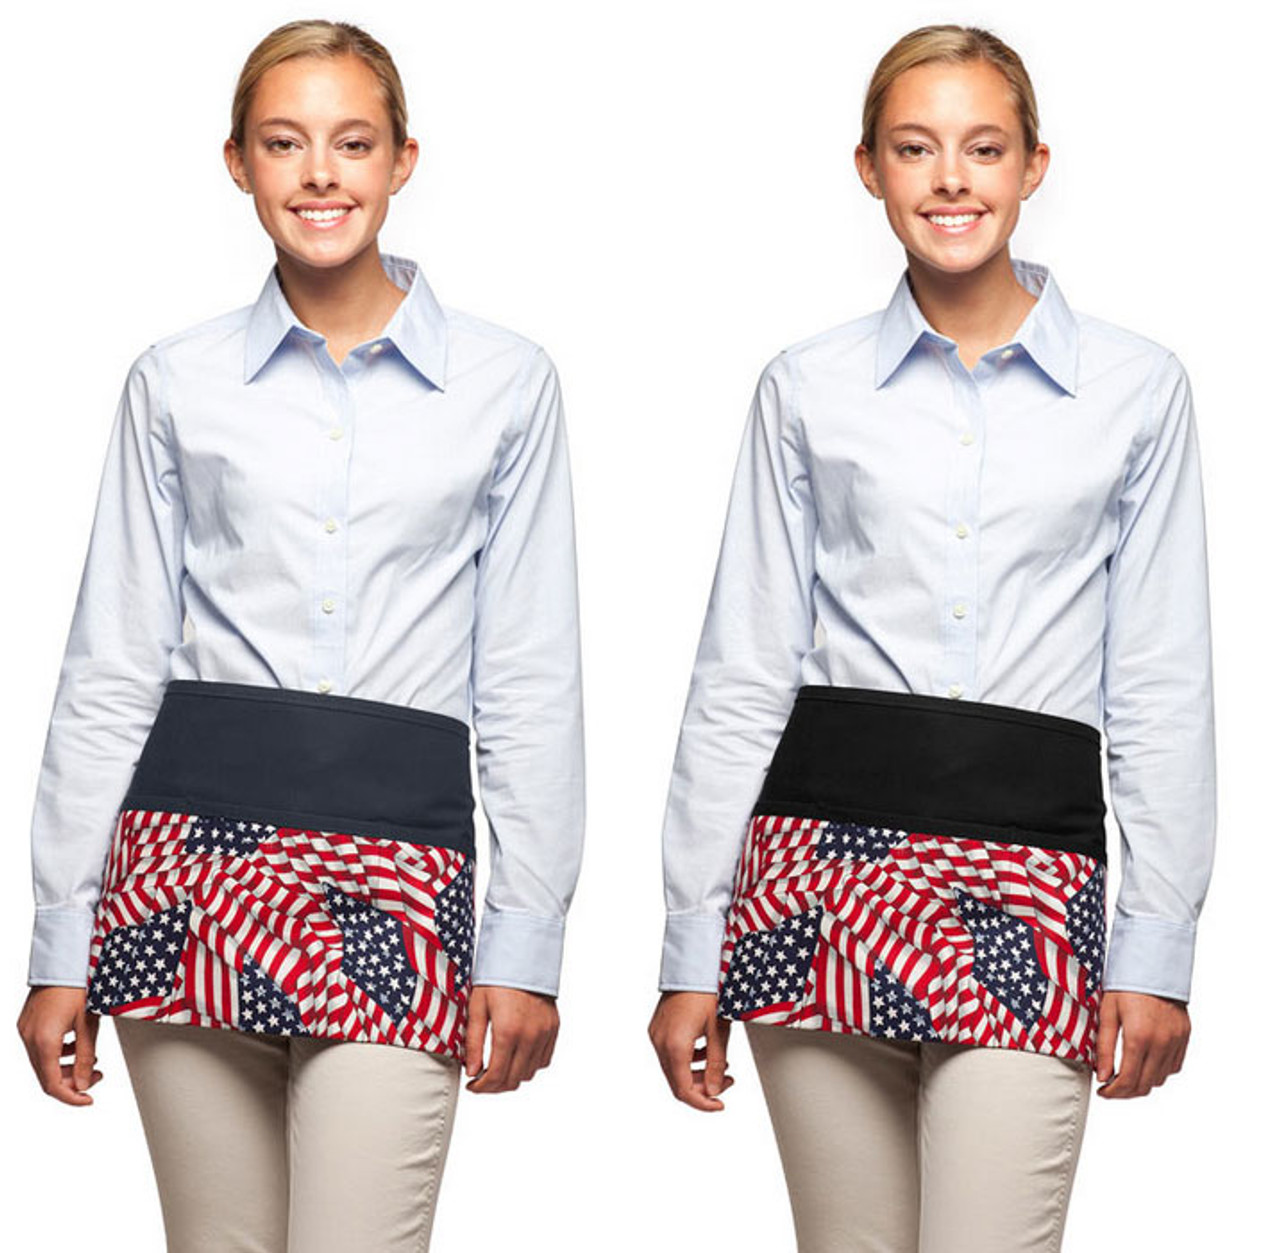 Black and navy based american flag aprons